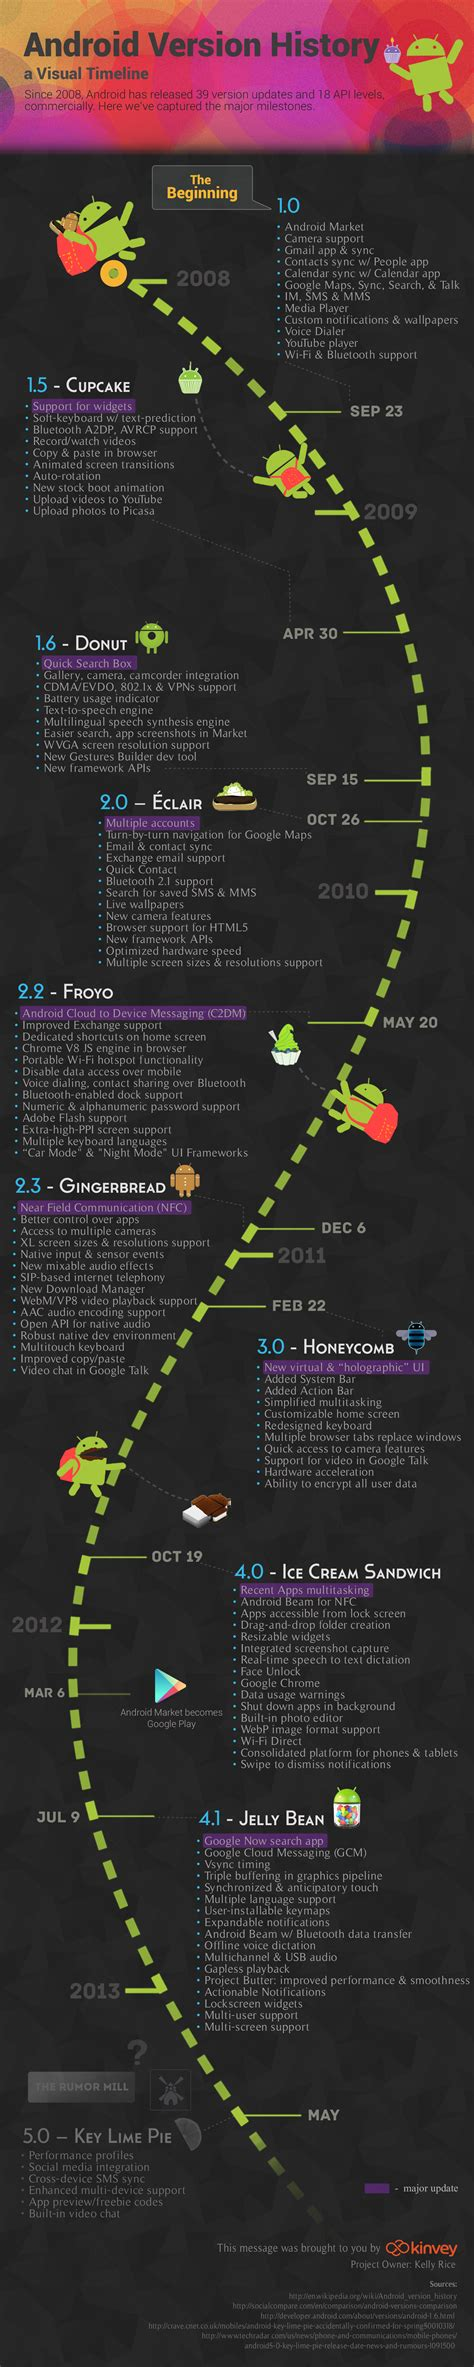 android version history android version history a visual timeline infographic enterprise mobile backend as a